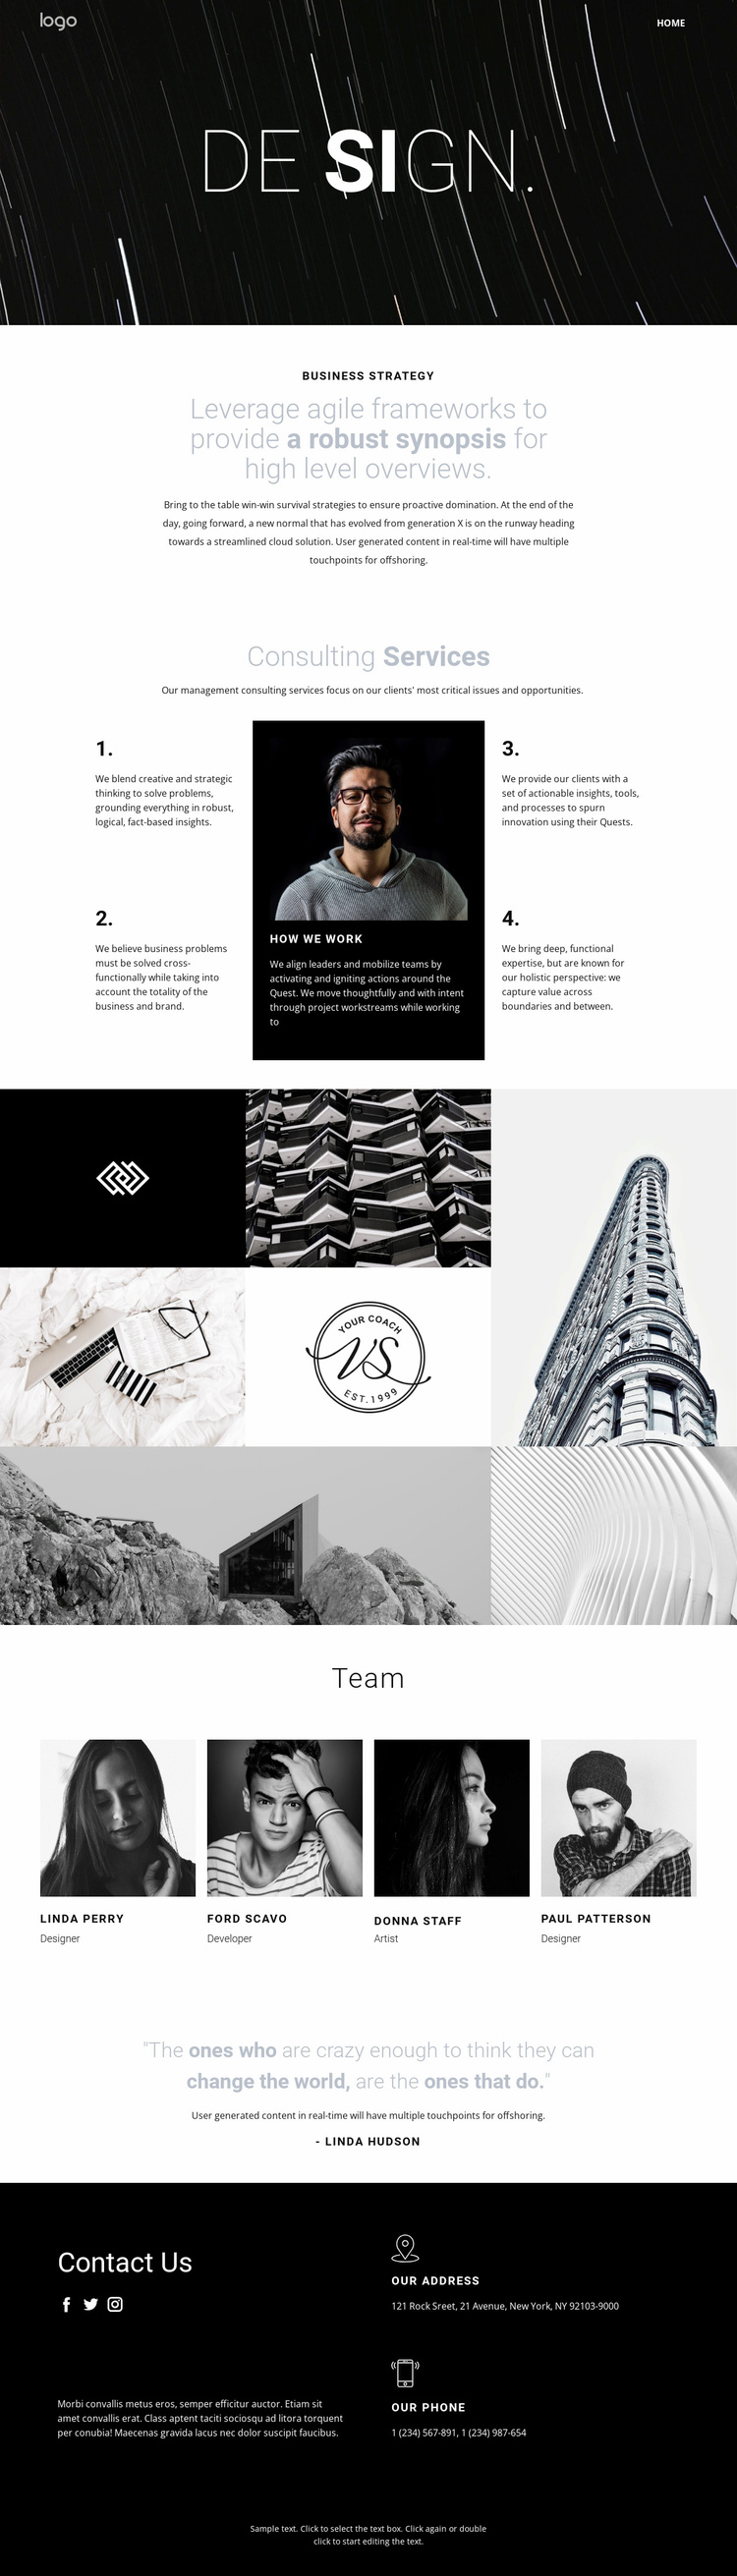 Design and creative art  Landing Page